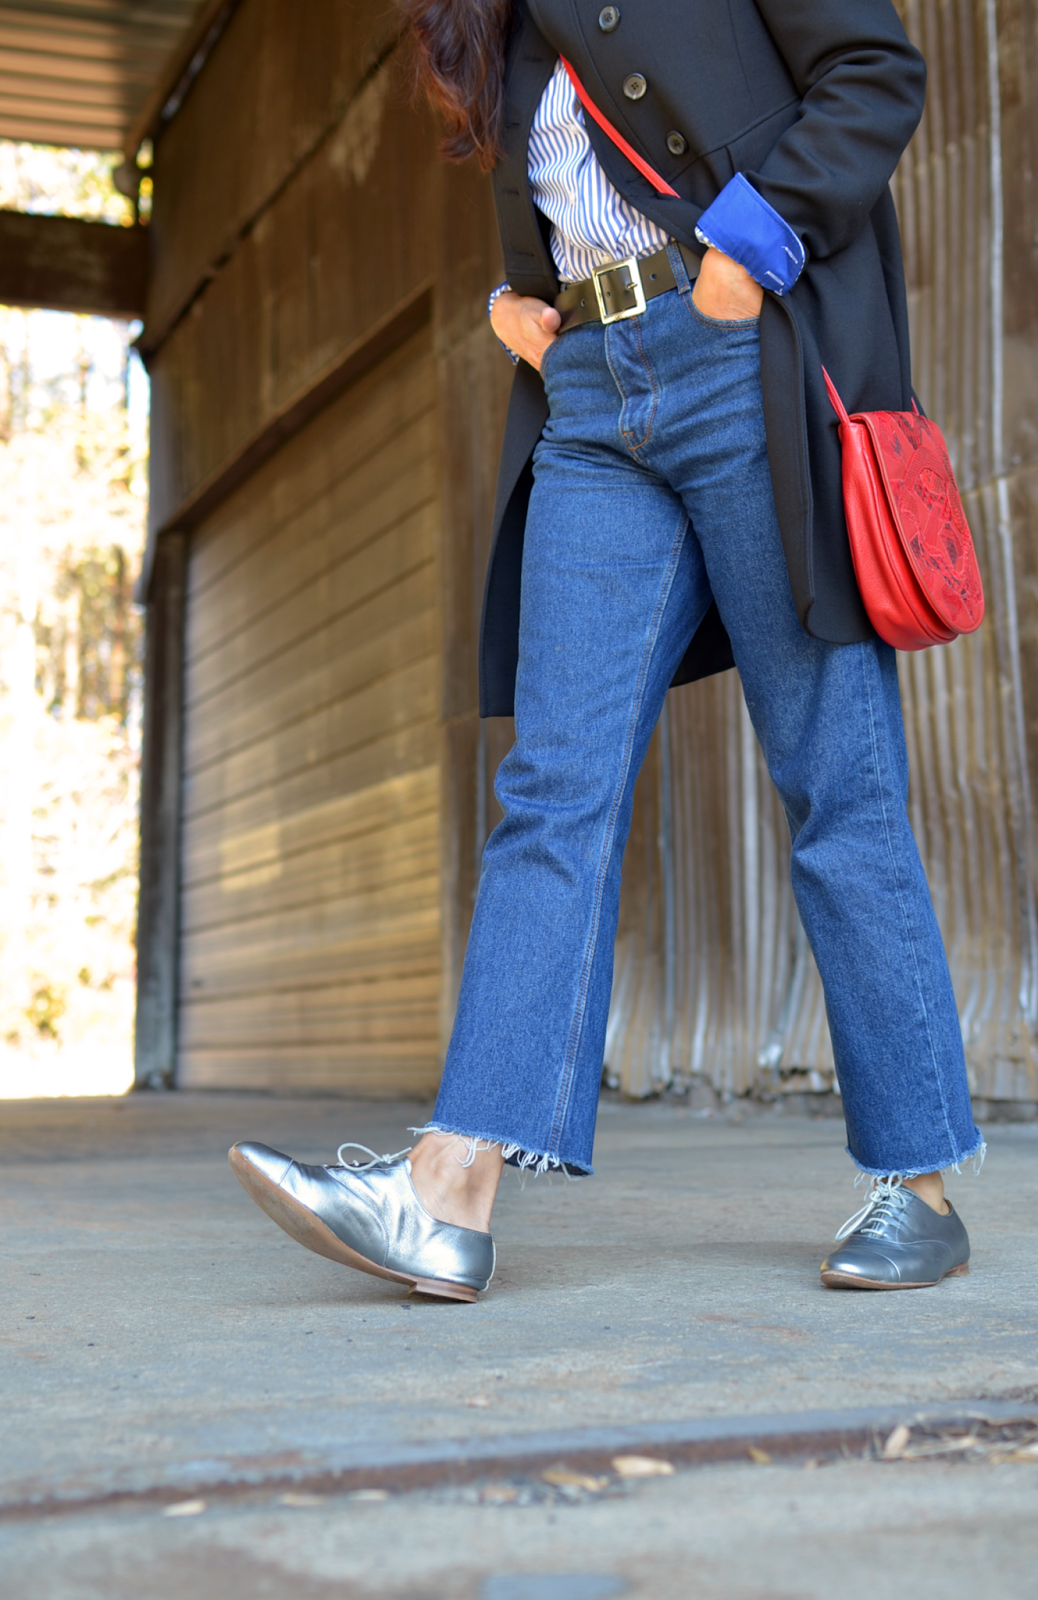 Silver brogues street style